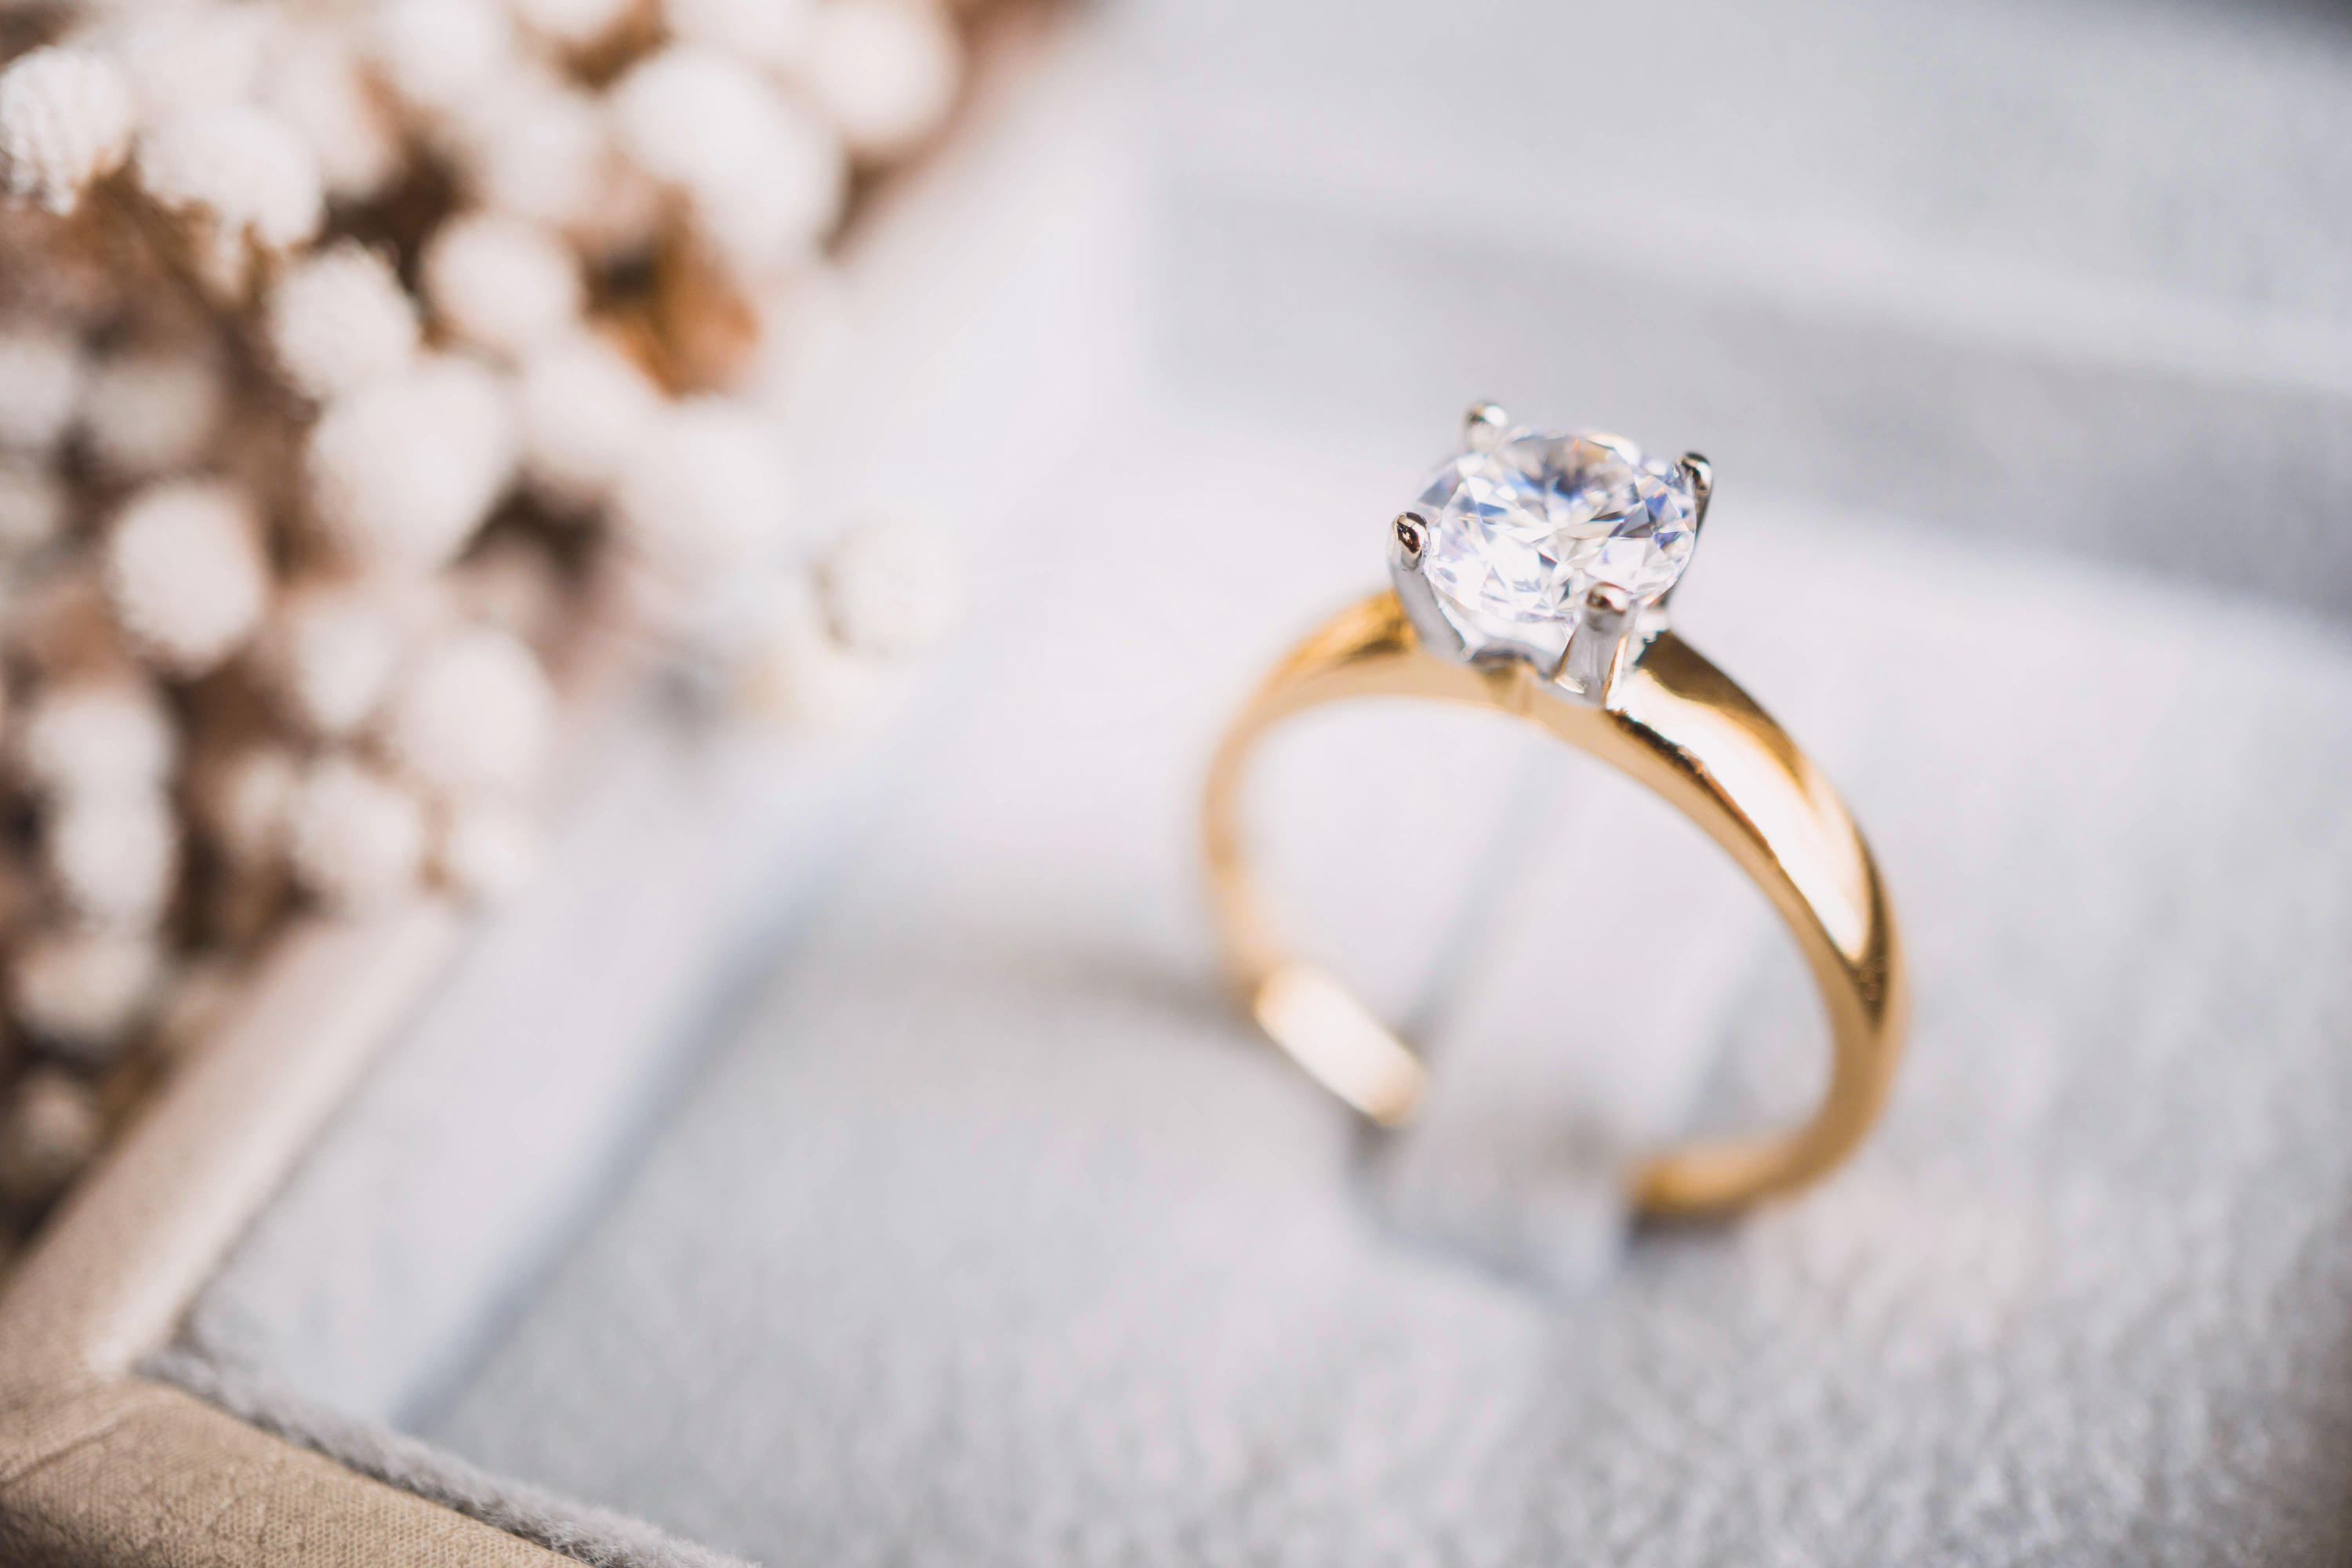 7 best places to buy engagement rings in Hong Kong